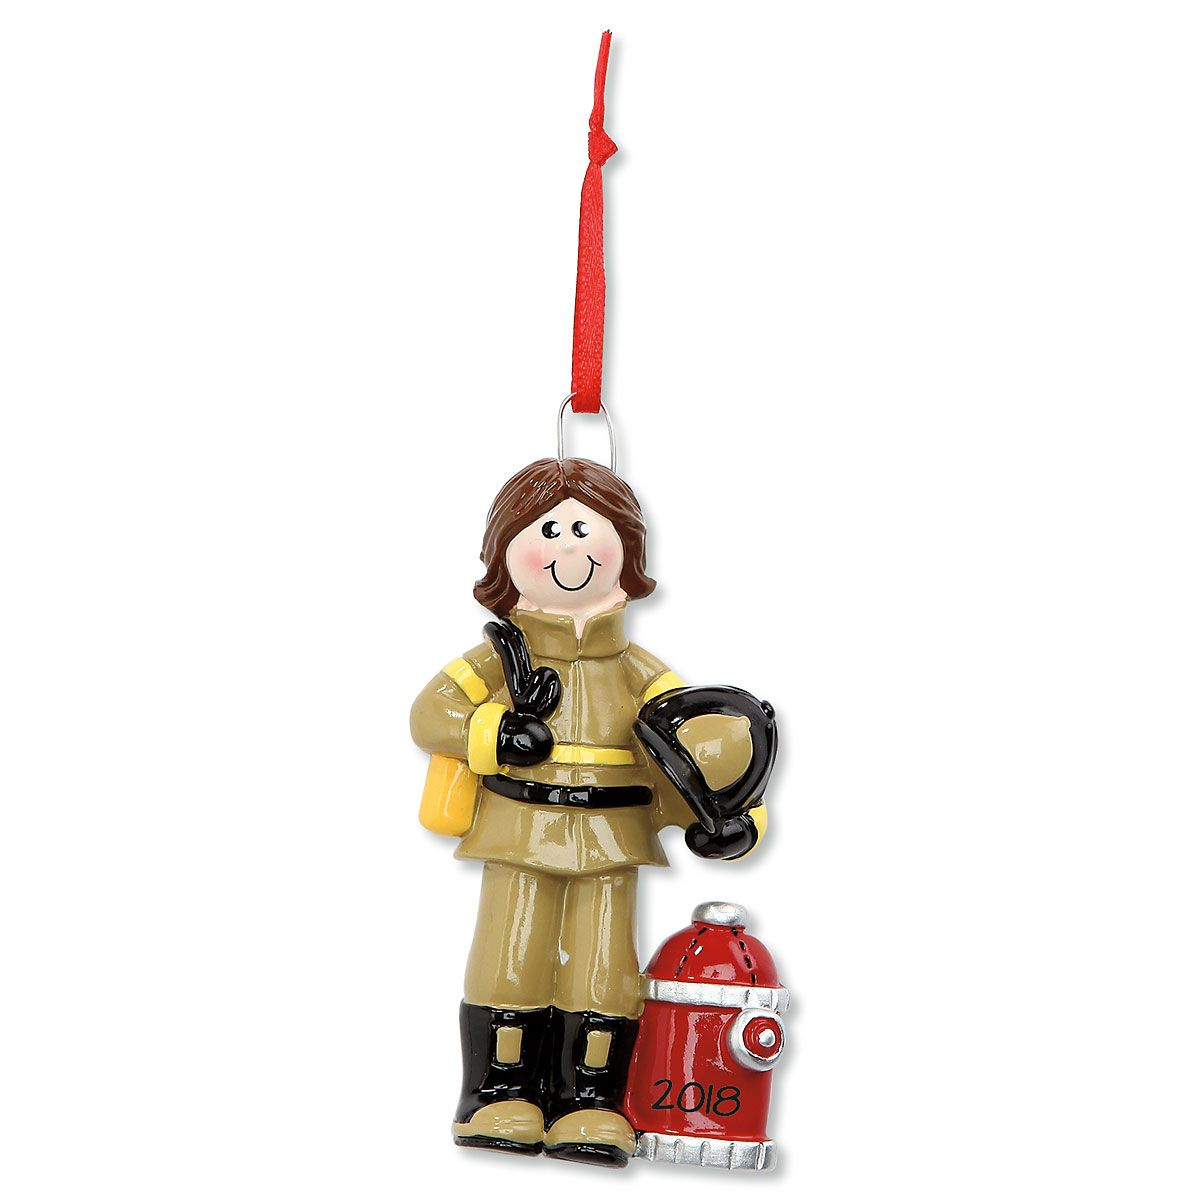 Firewoman Personalized Christmas Ornament